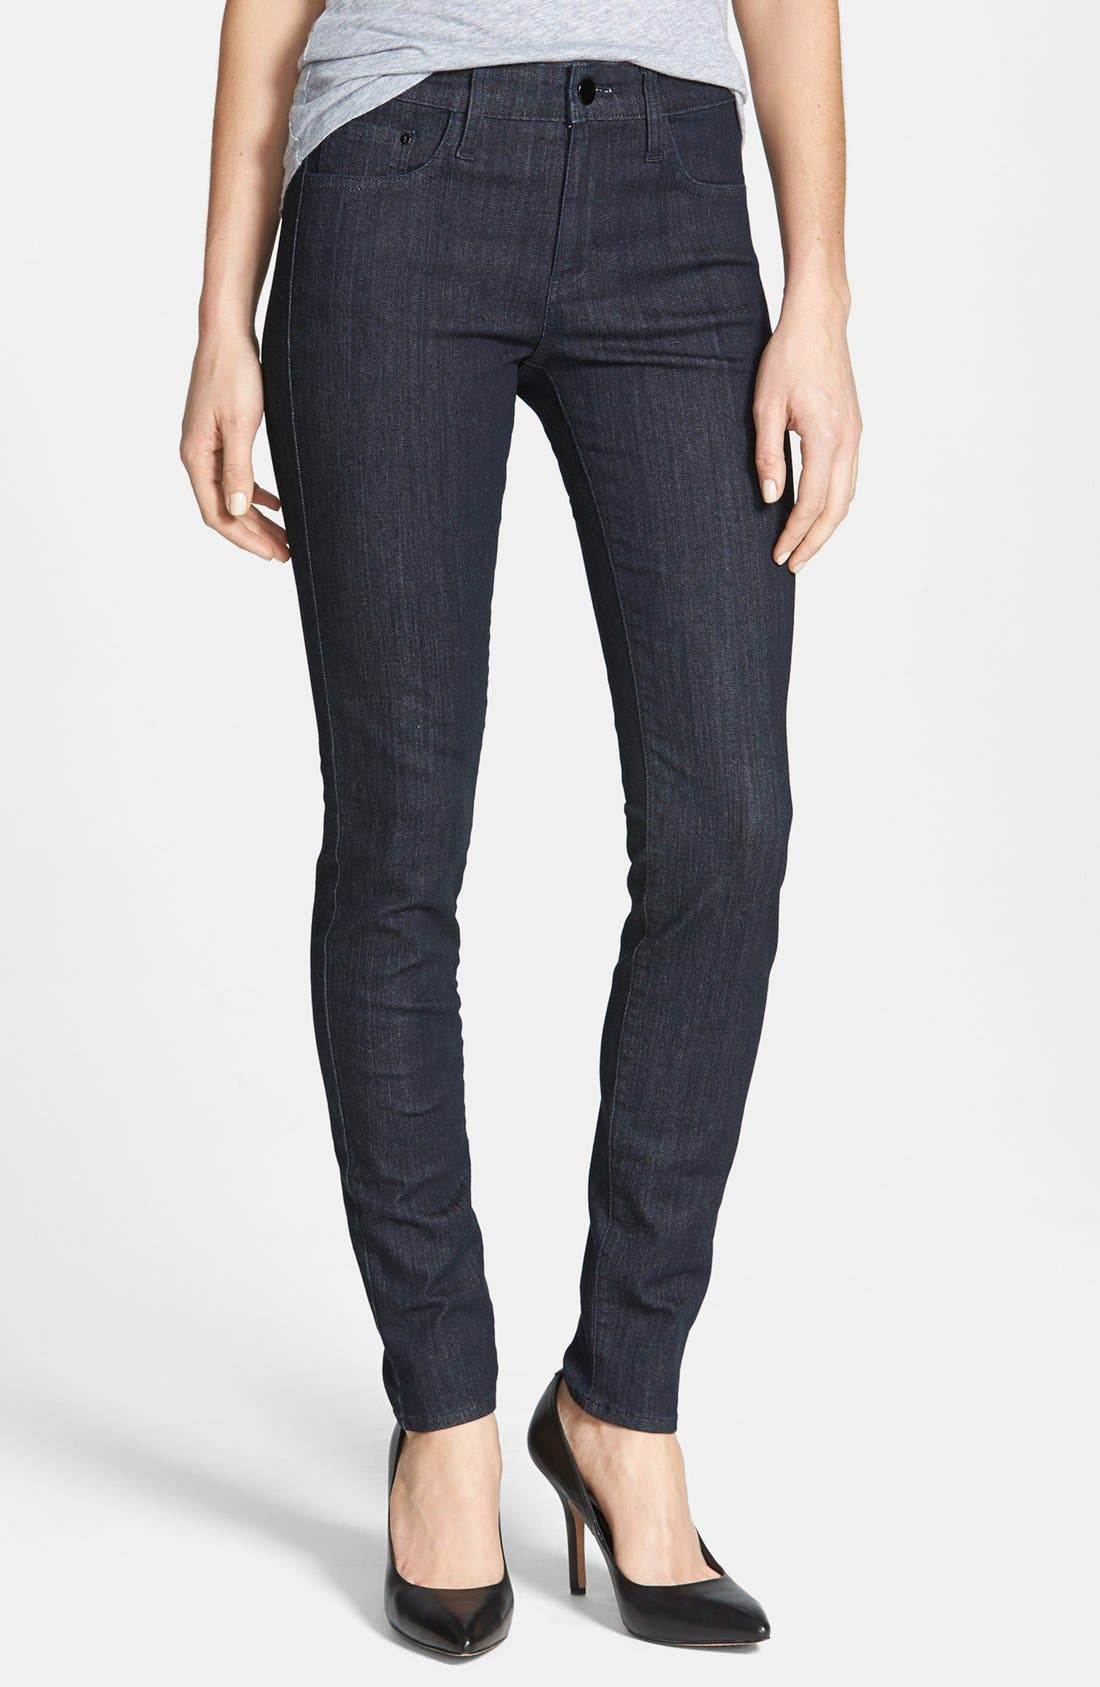 Main Image - !iT Collective 'Lauren' Easy Skinny Jeans (Pure)